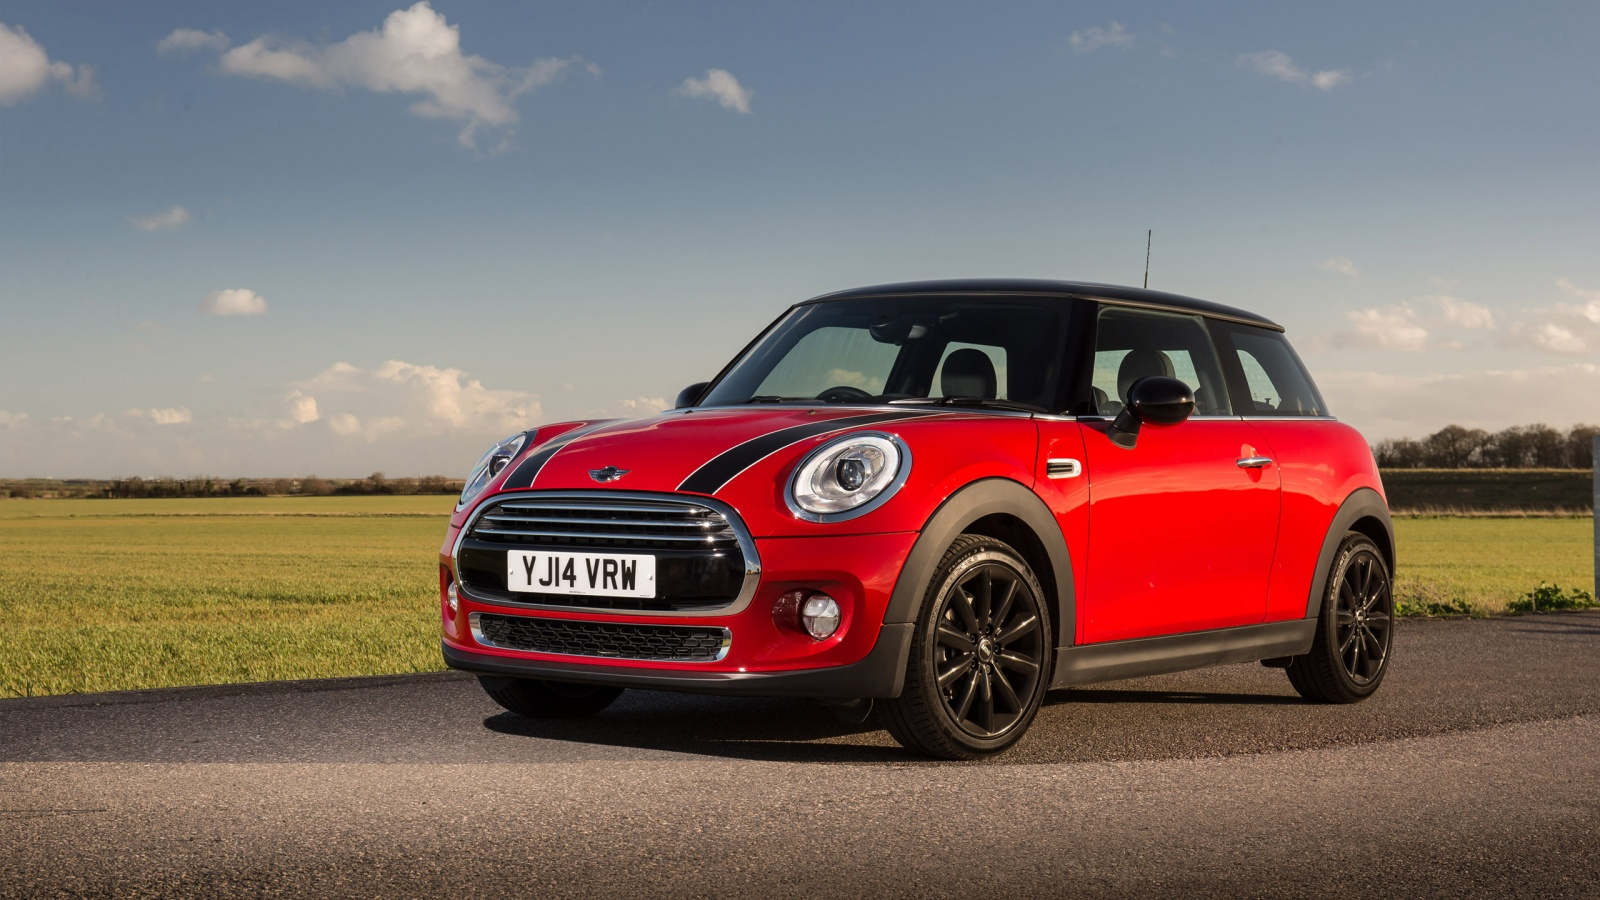 2014 Mini Cooper D Wallpaper HD Car Wallpapers 1600x900